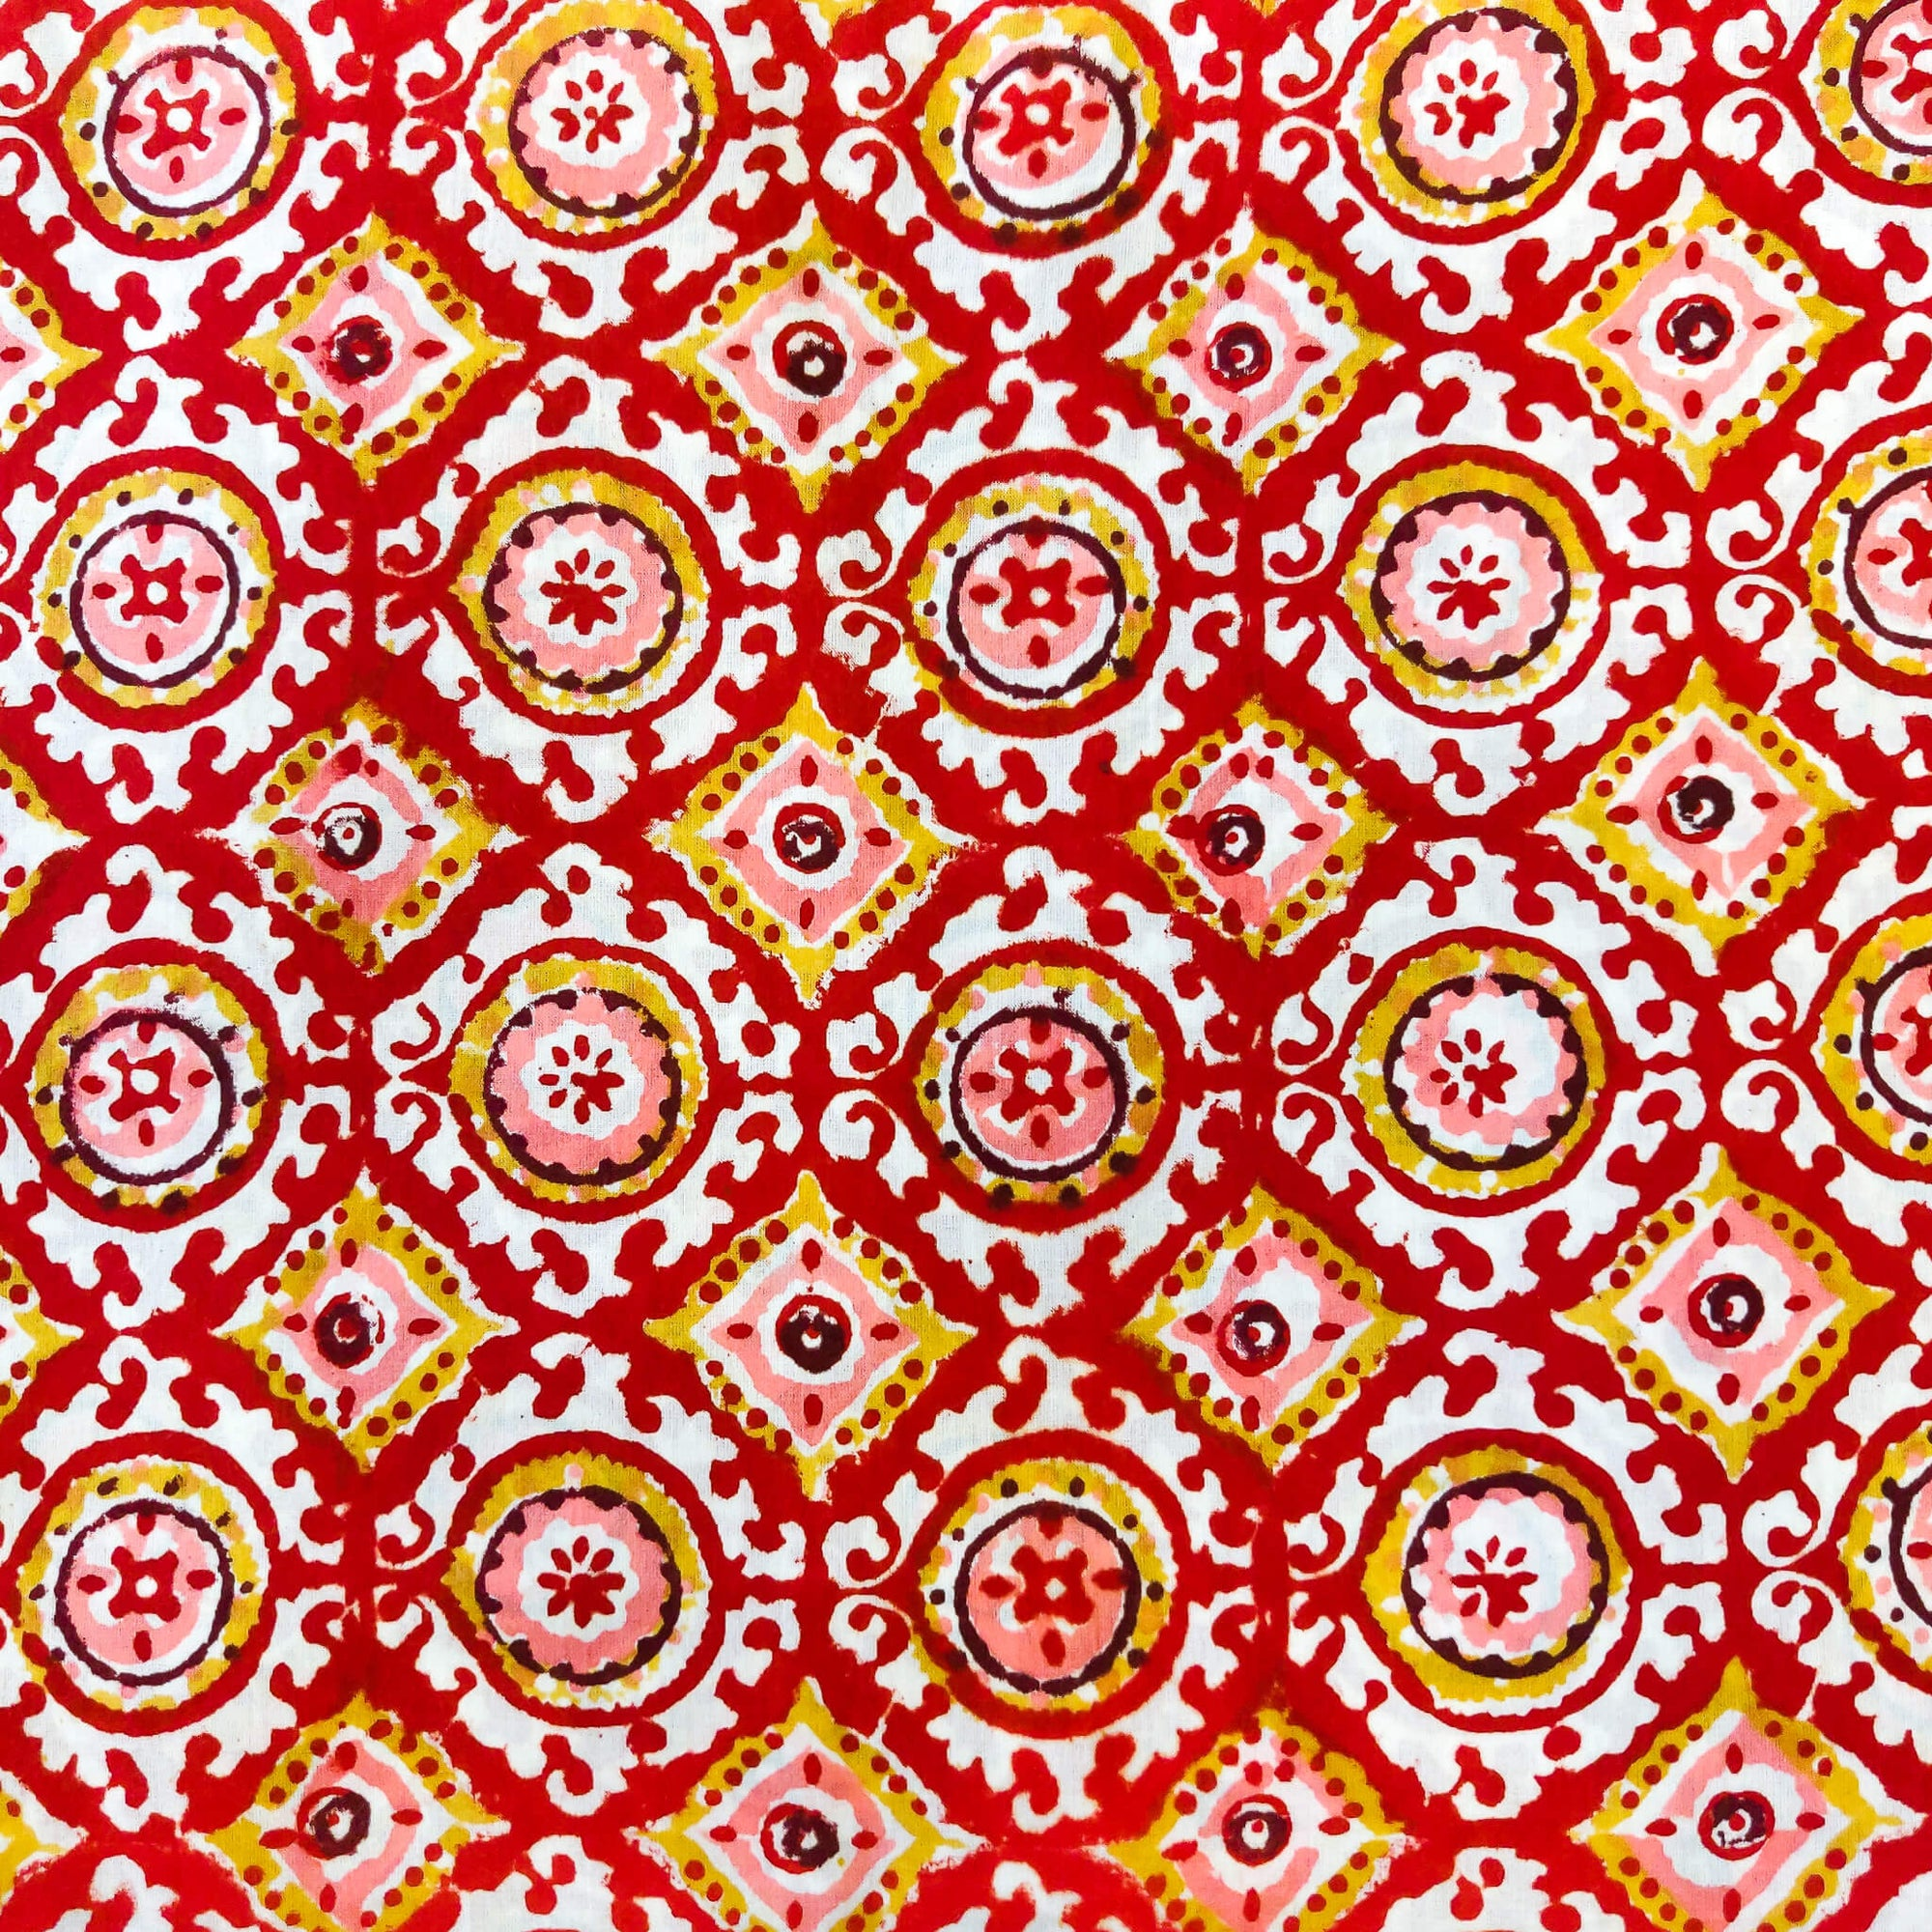 Pure Cotton Jaipuri White With Red Pink And Mustard Tile Hand Block Print Fabric